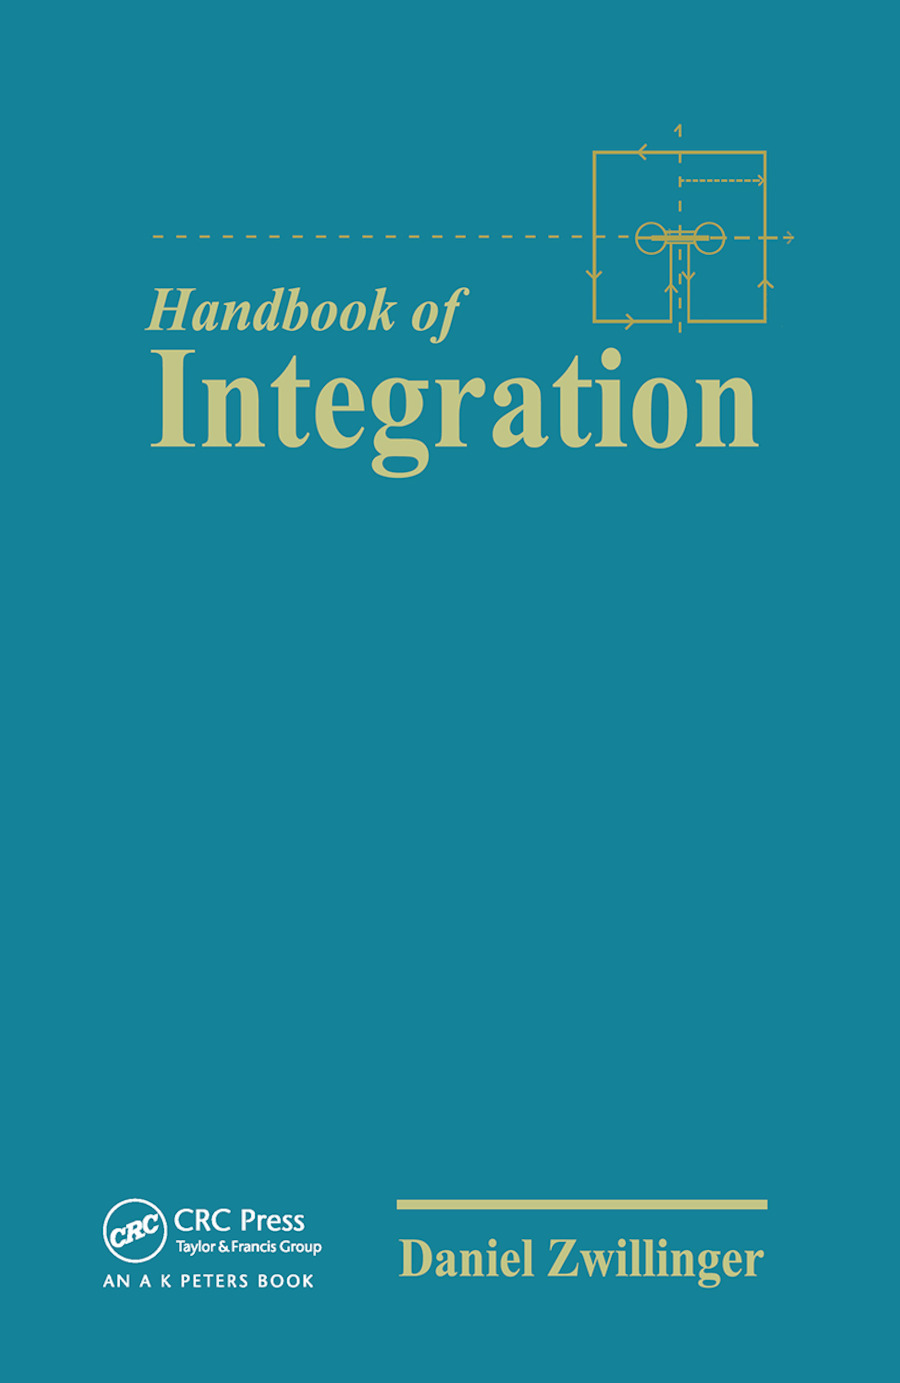 The Handbook of Integration